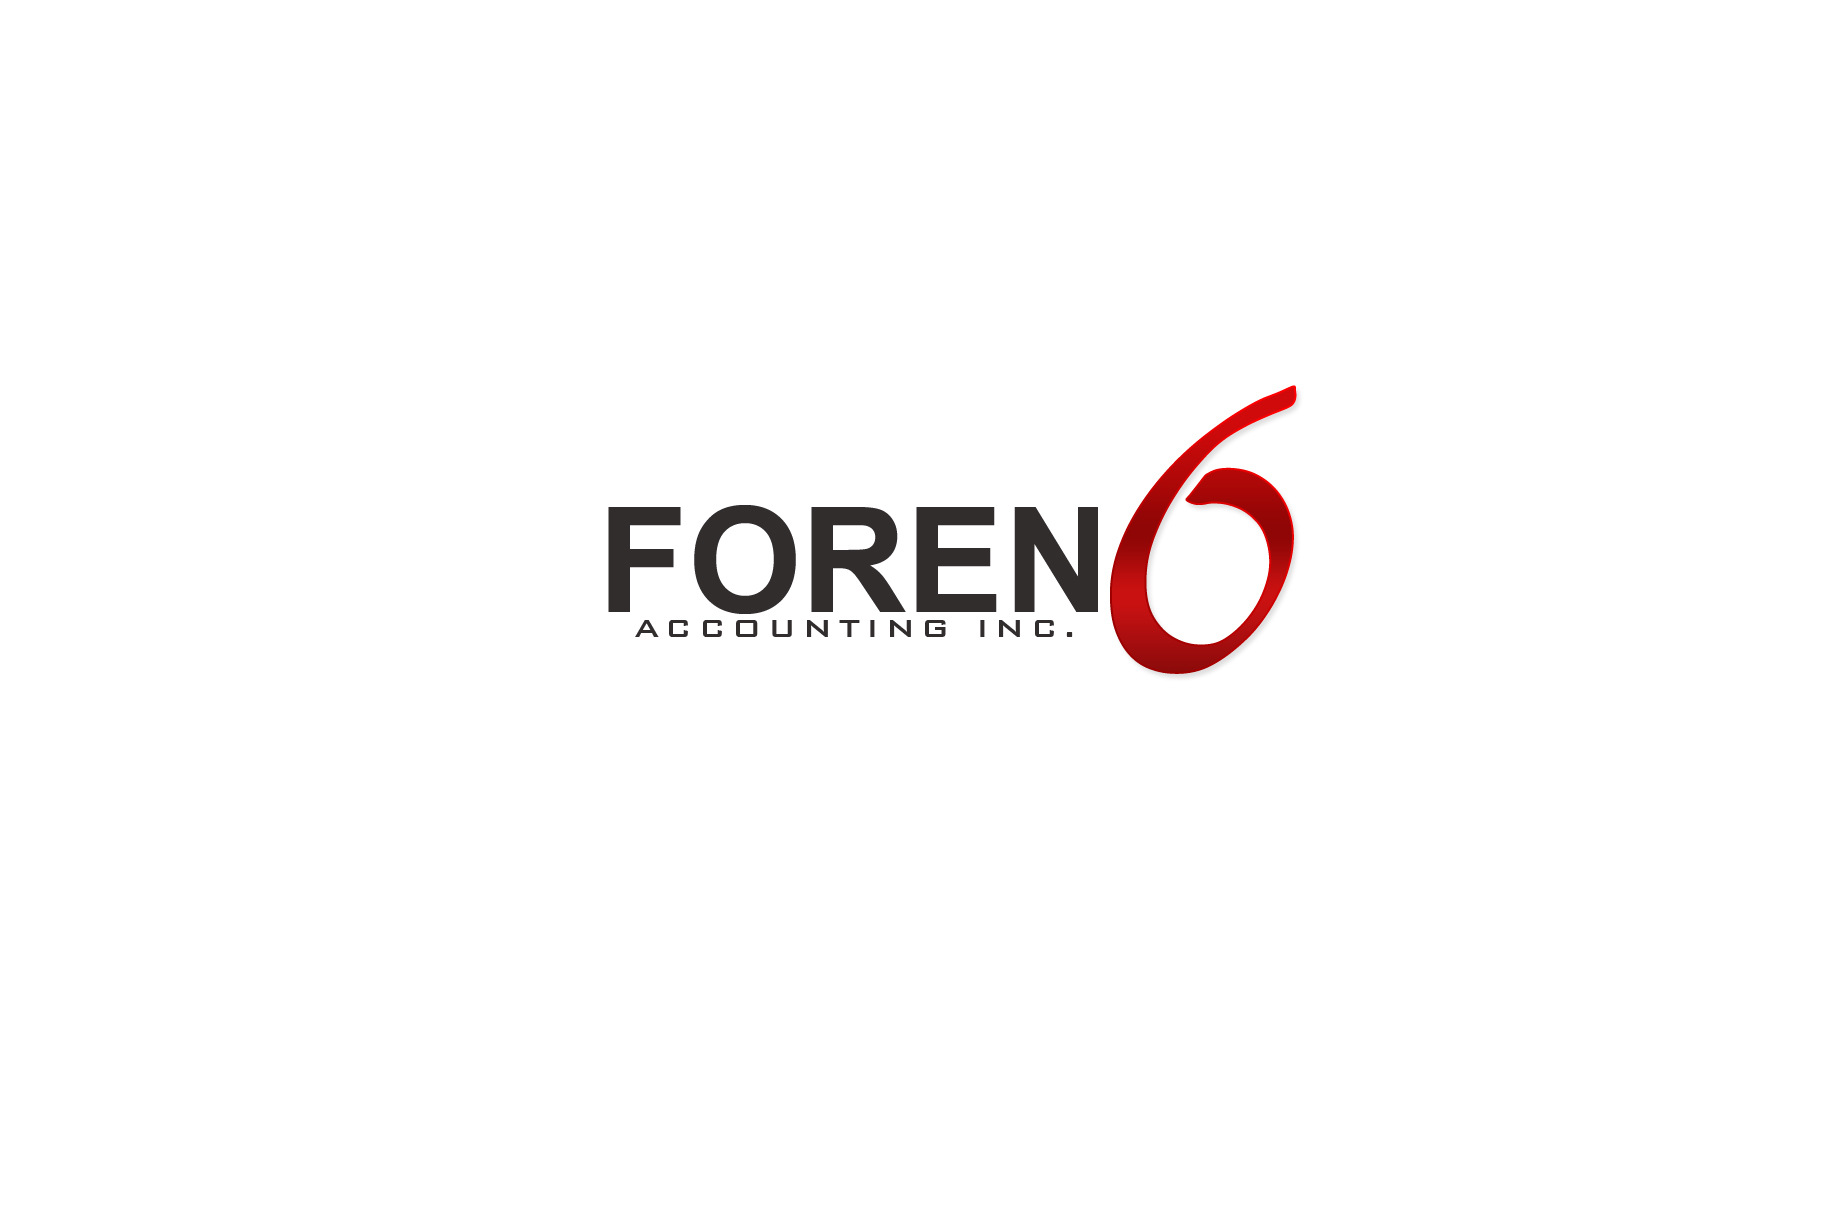 Logo Design by Jan Chua - Entry No. 54 in the Logo Design Contest FORENSIX ACCOUNTING INC. Logo Design.